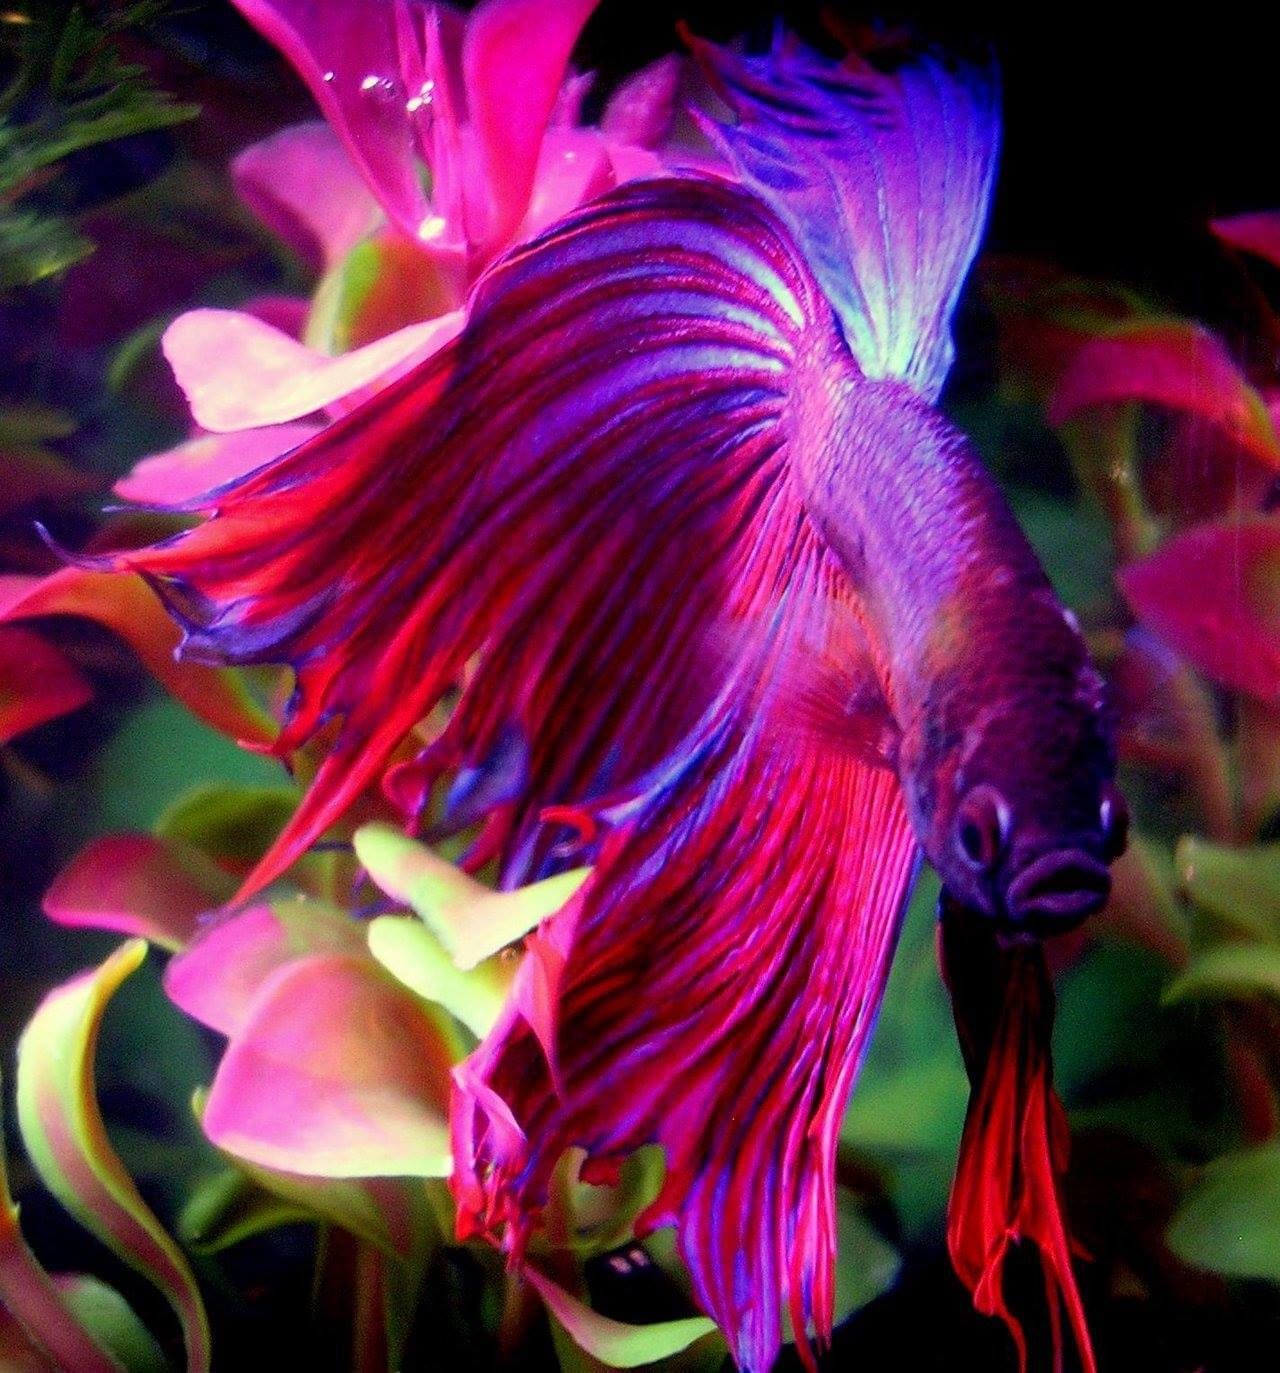 most beautiful betta fish in the world 4